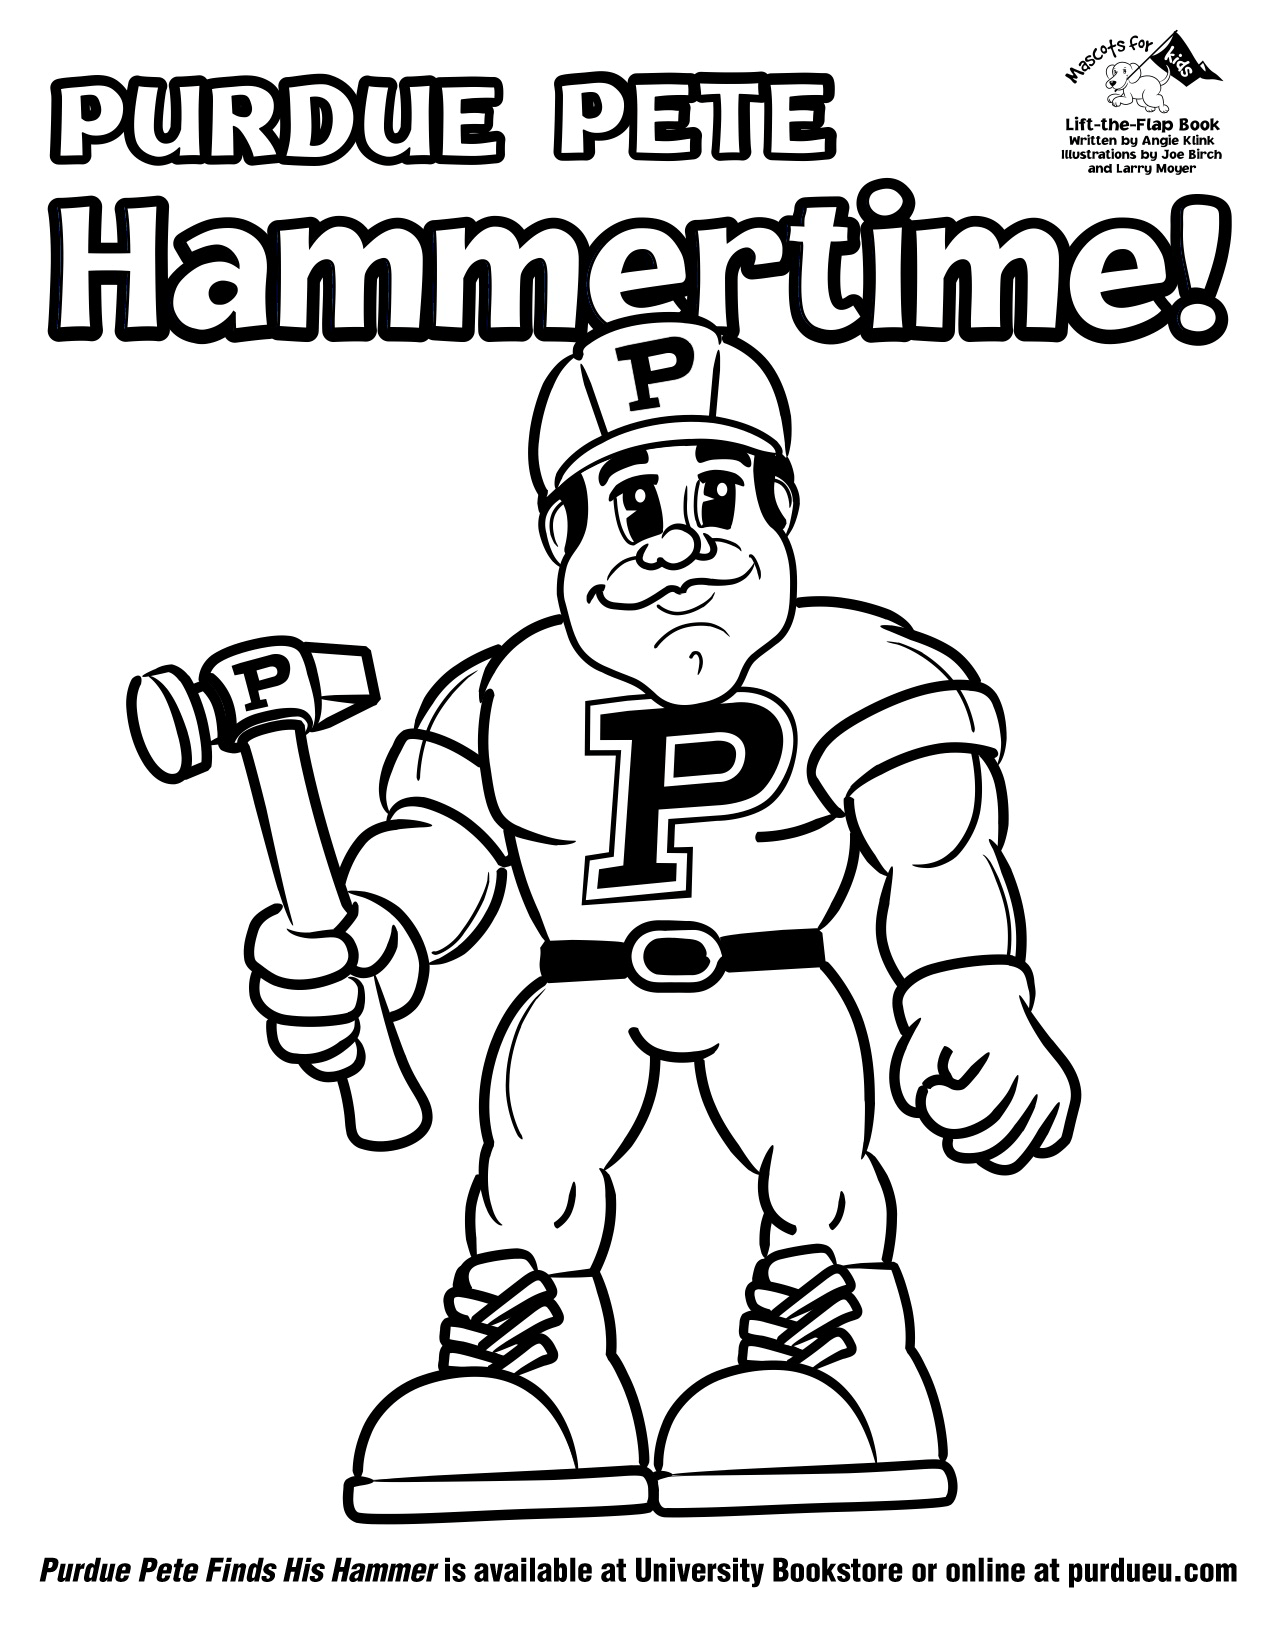 Purdue Pete Finds His Hammer | Angie Klink